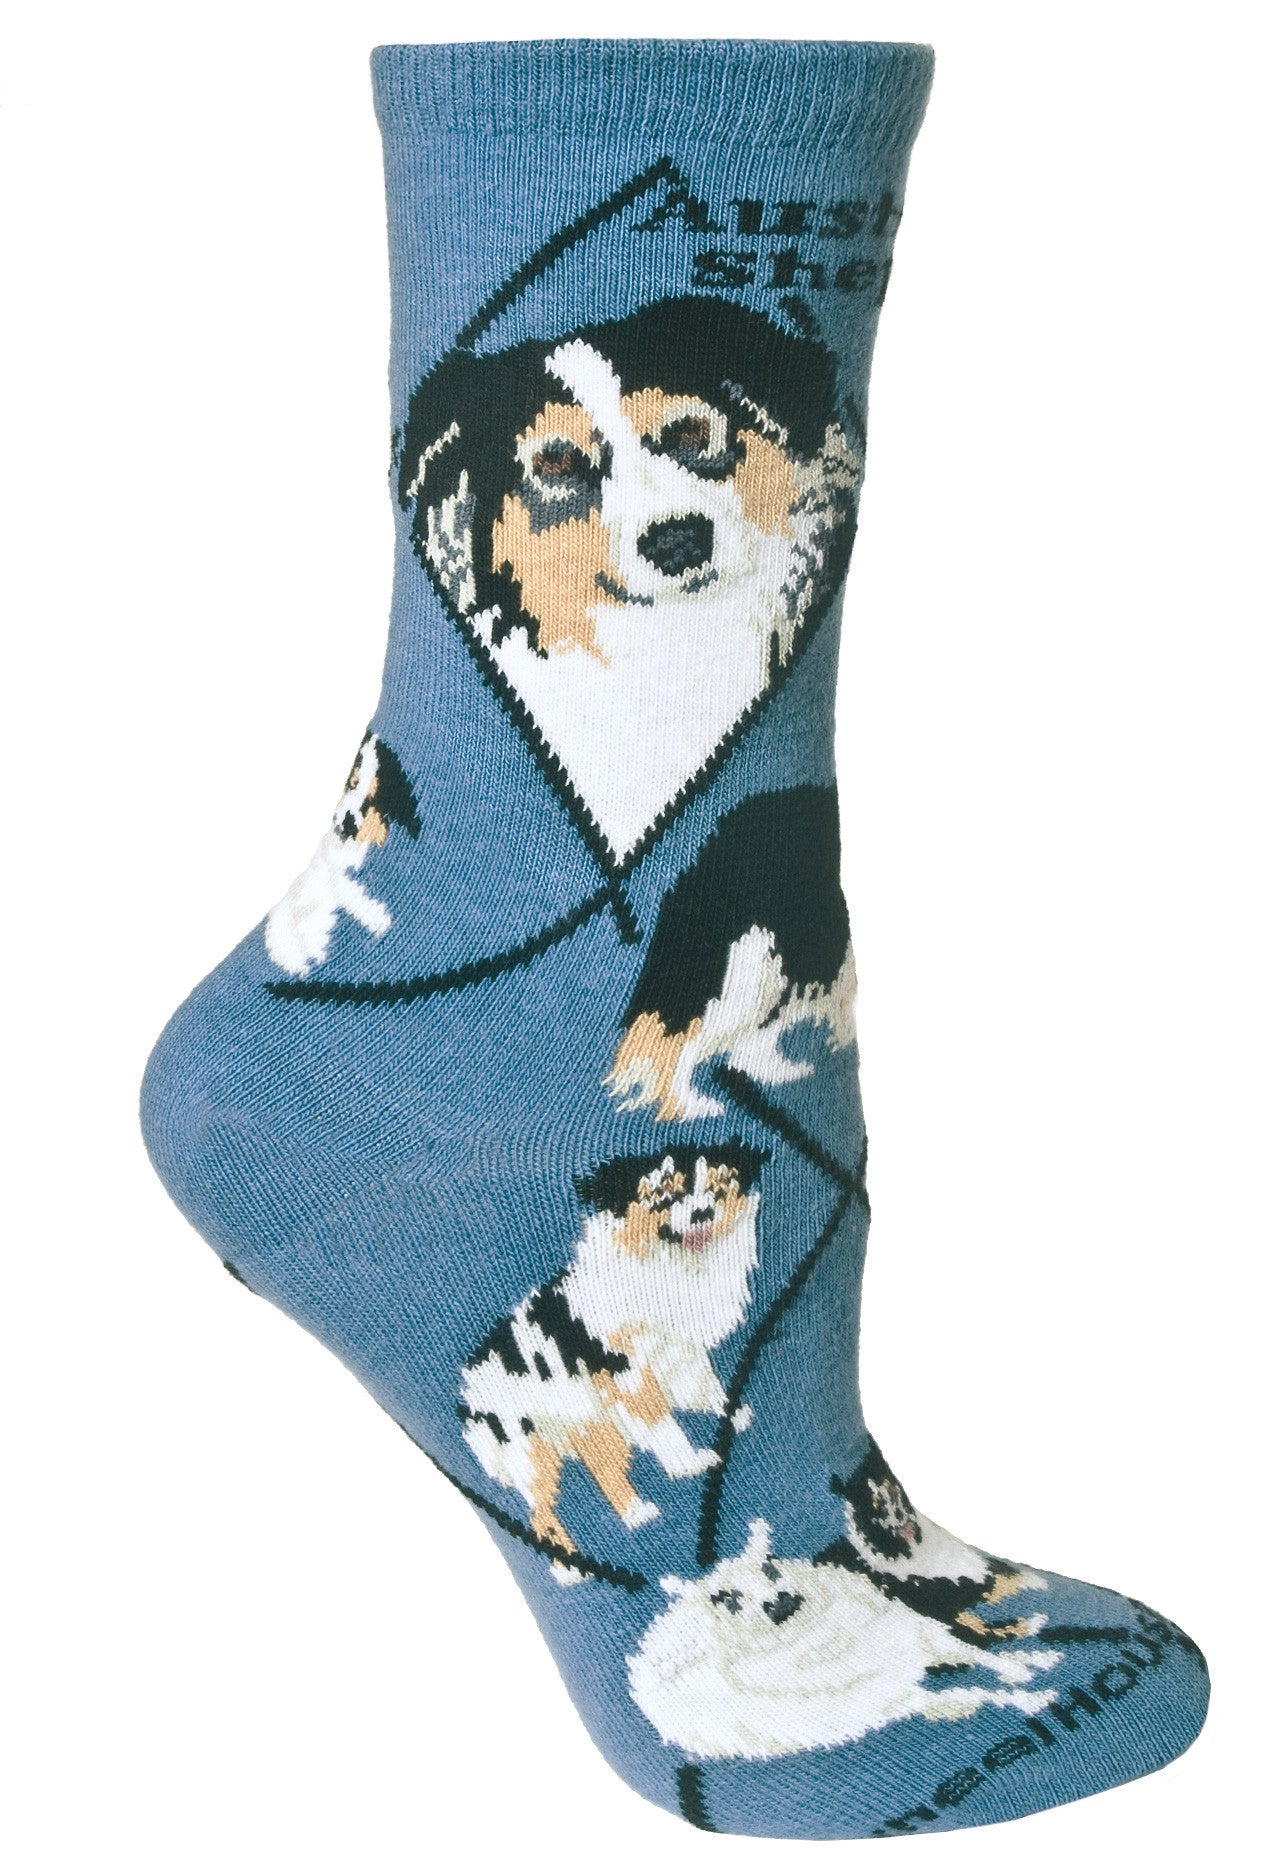 Australian Shepherd Crew Socks on Blue